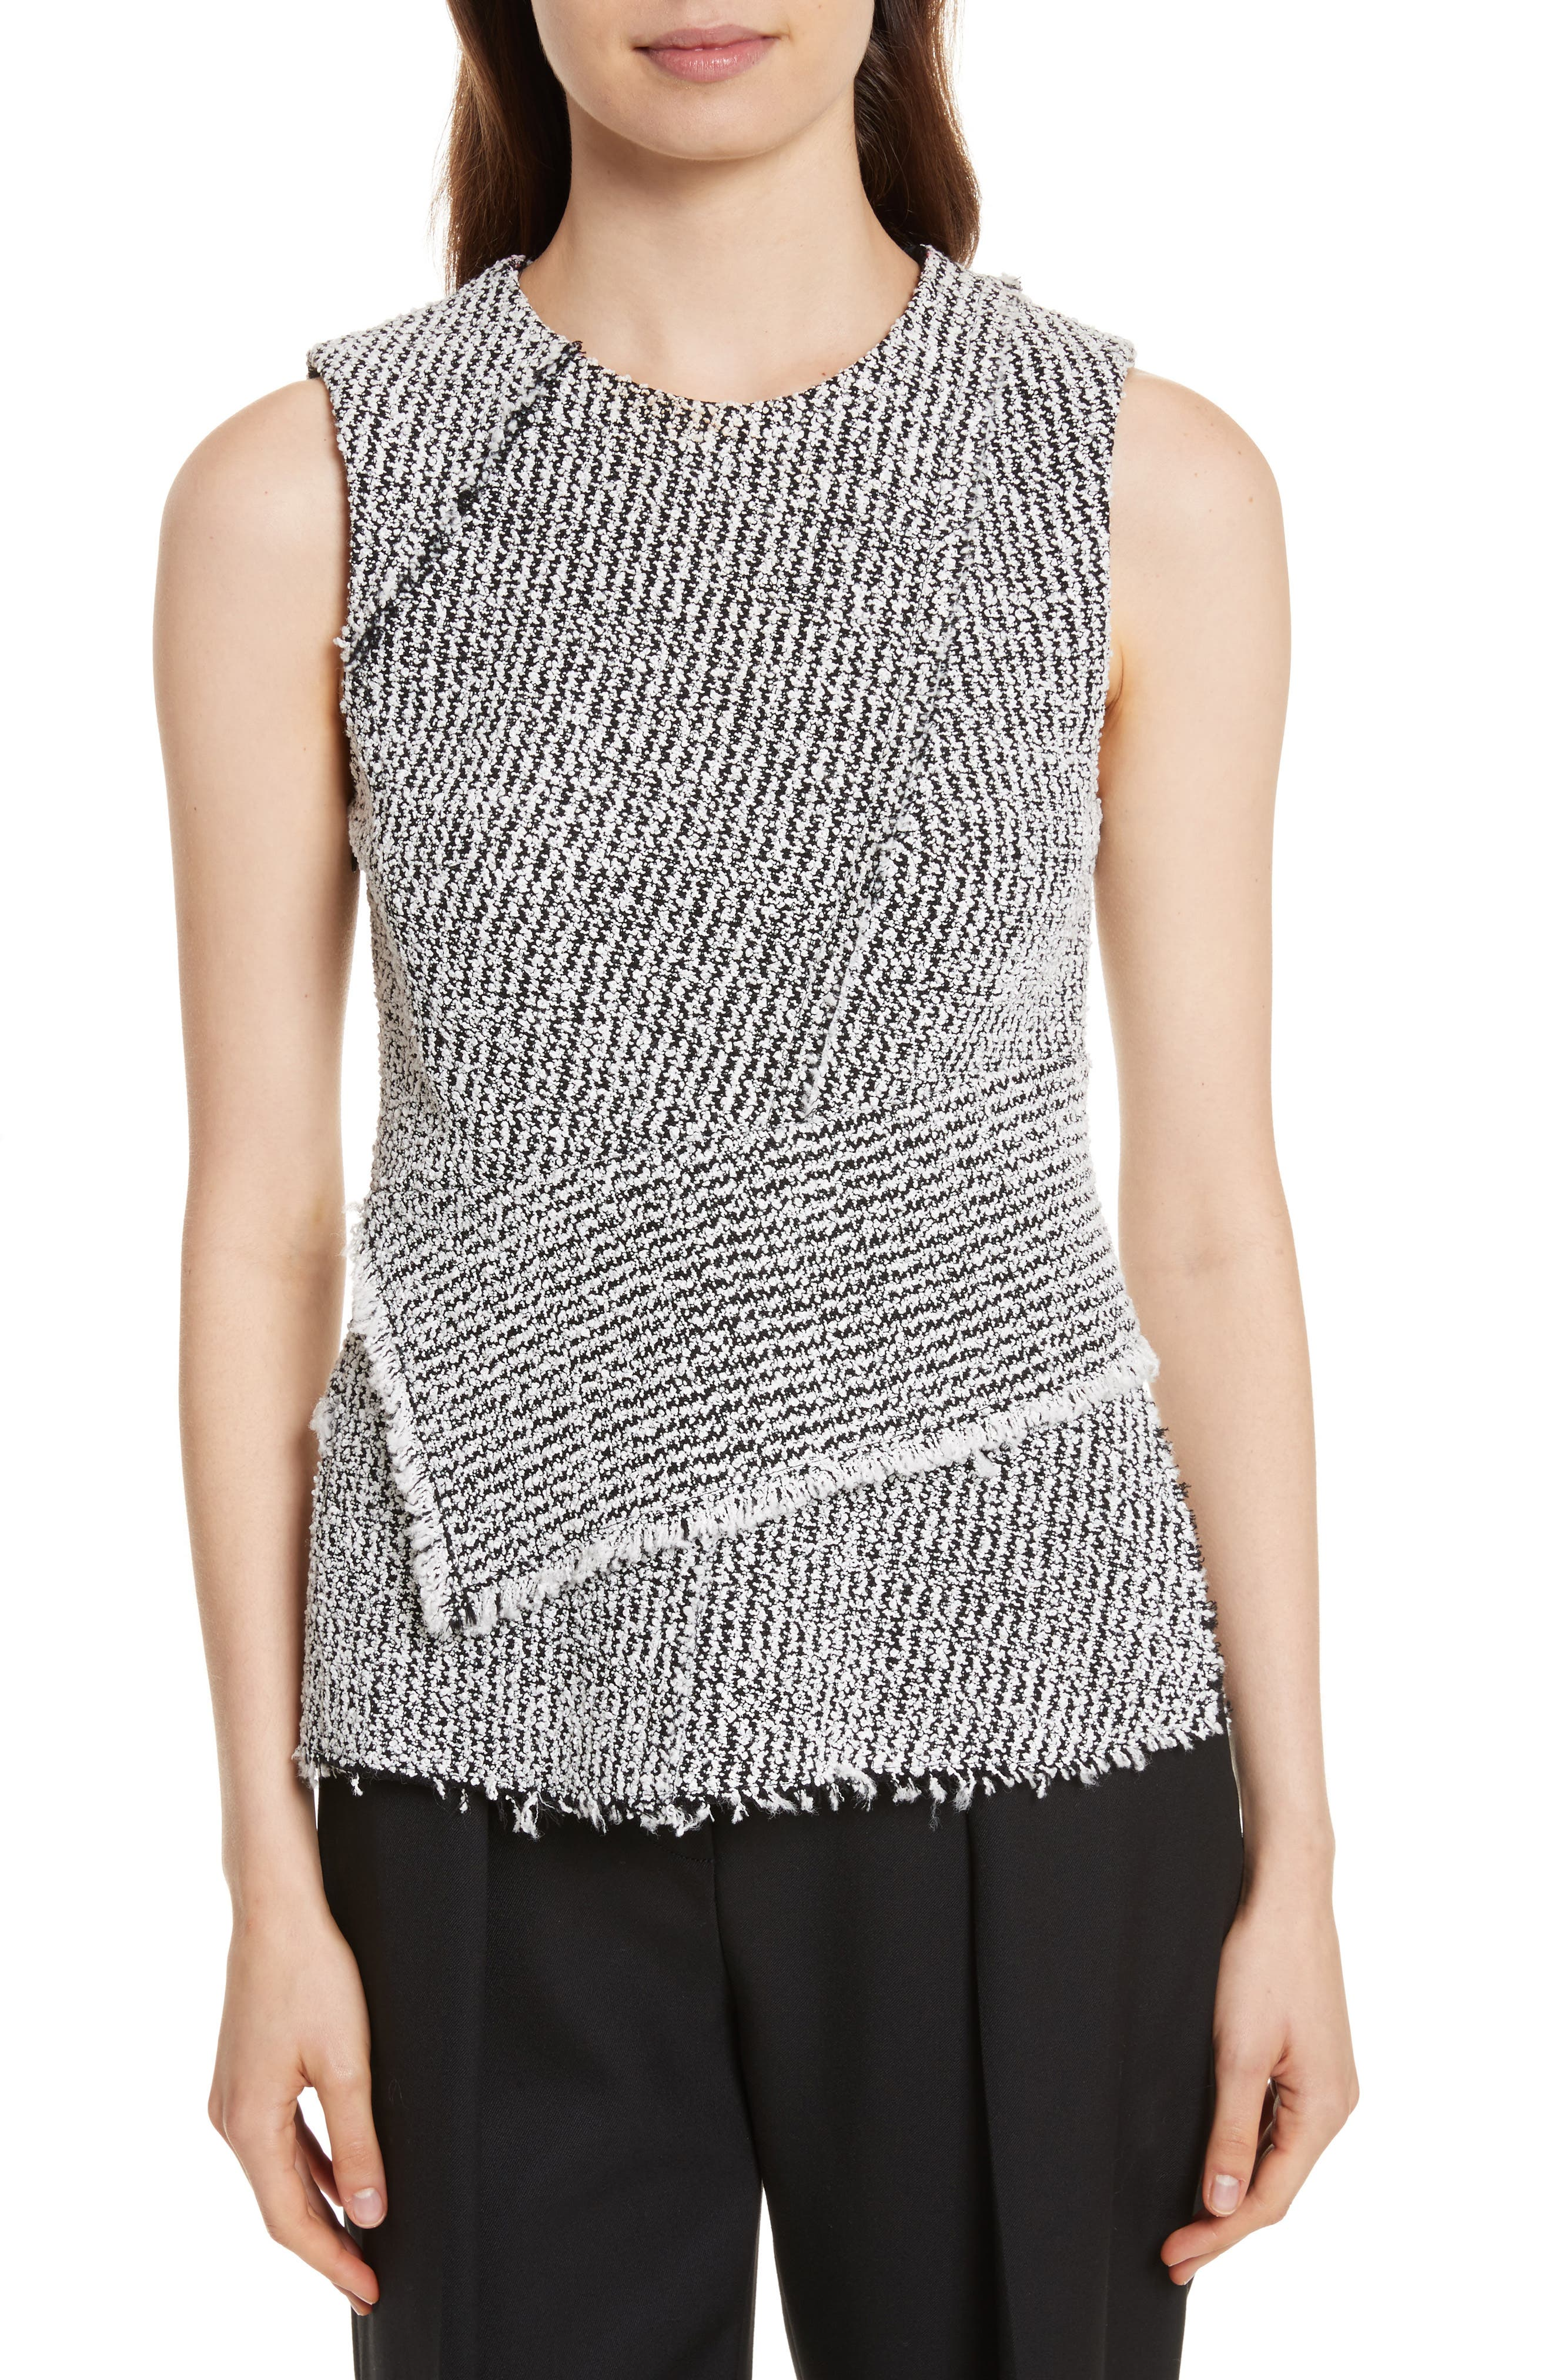 Main Image - 3.1 Phillip Lim Knit Wrap Top